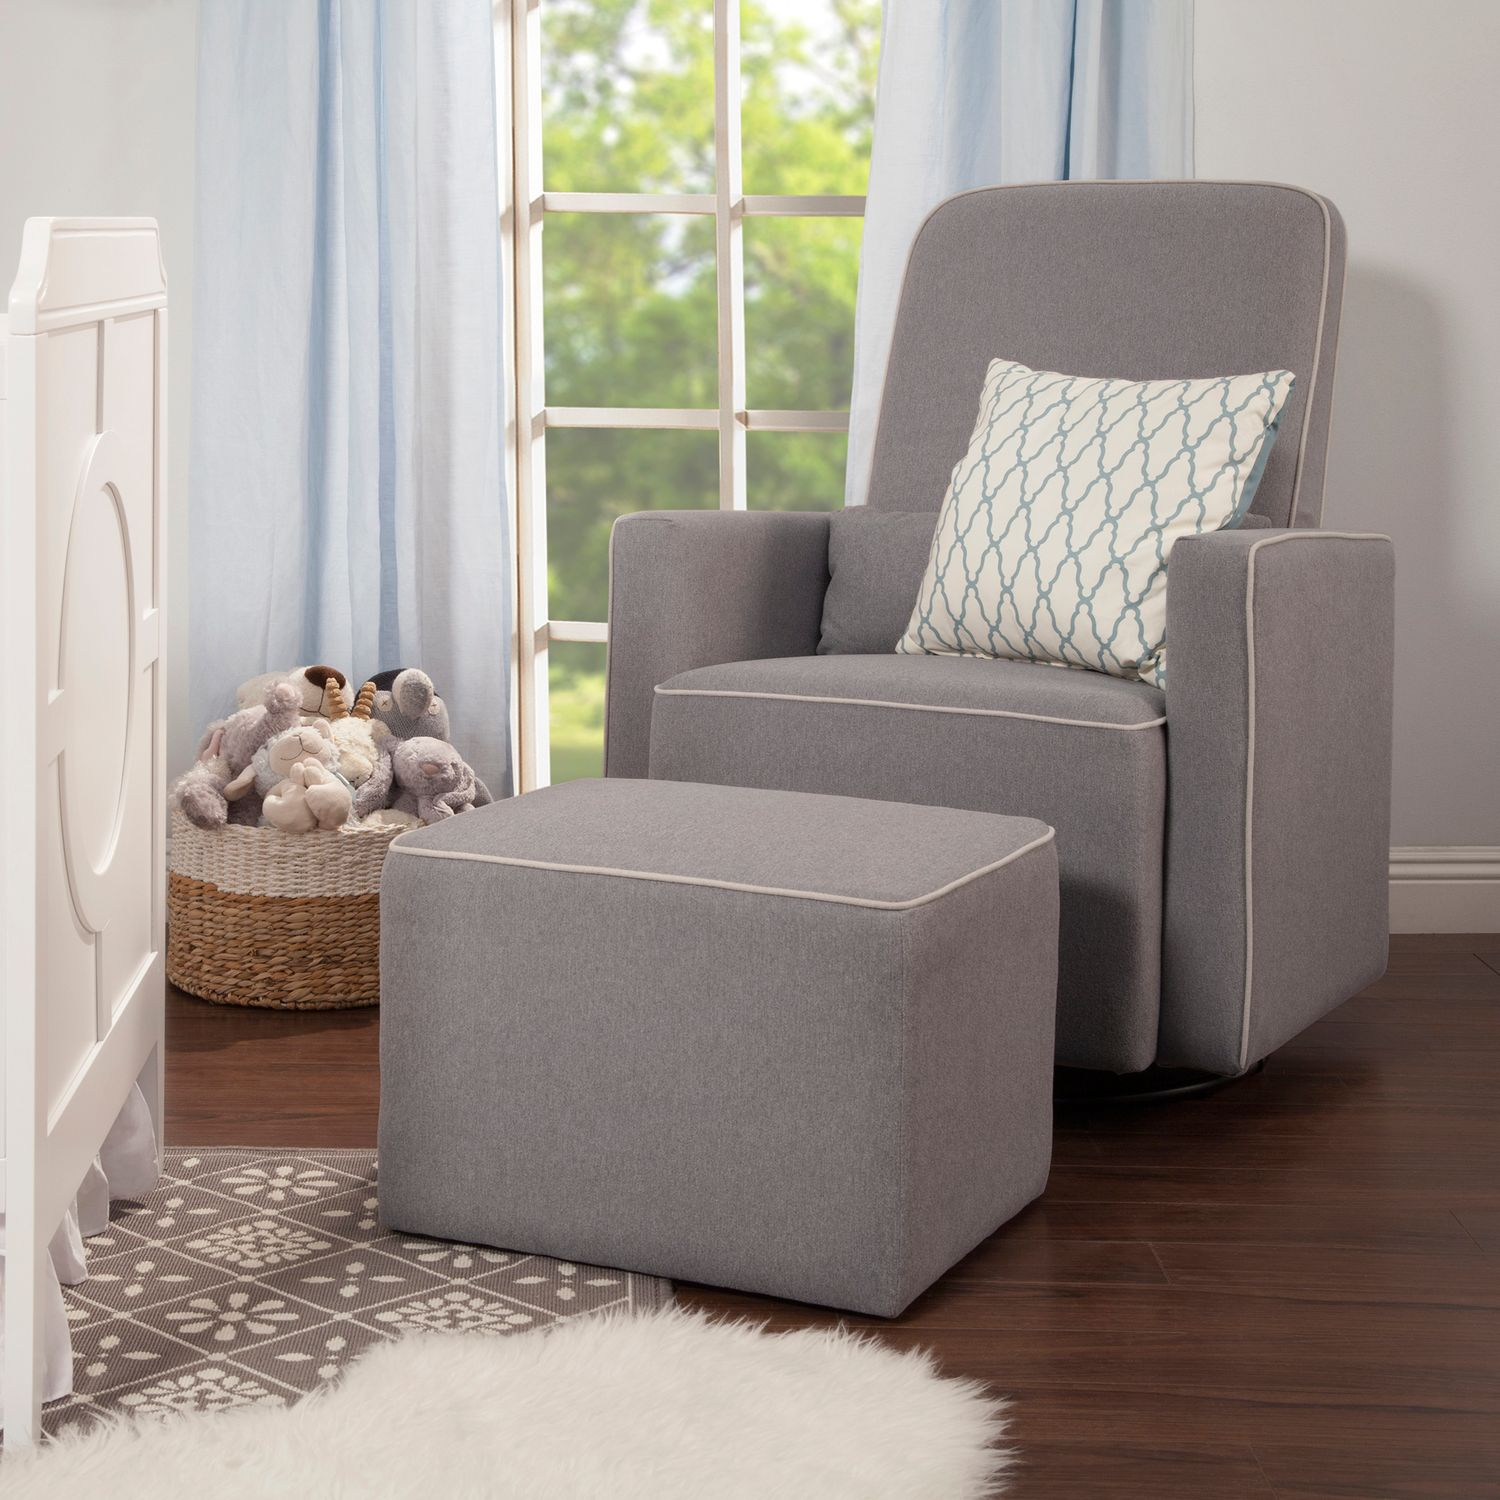 davinci olive glider chair u0026 ottoman set - Gliding Rocking Chair